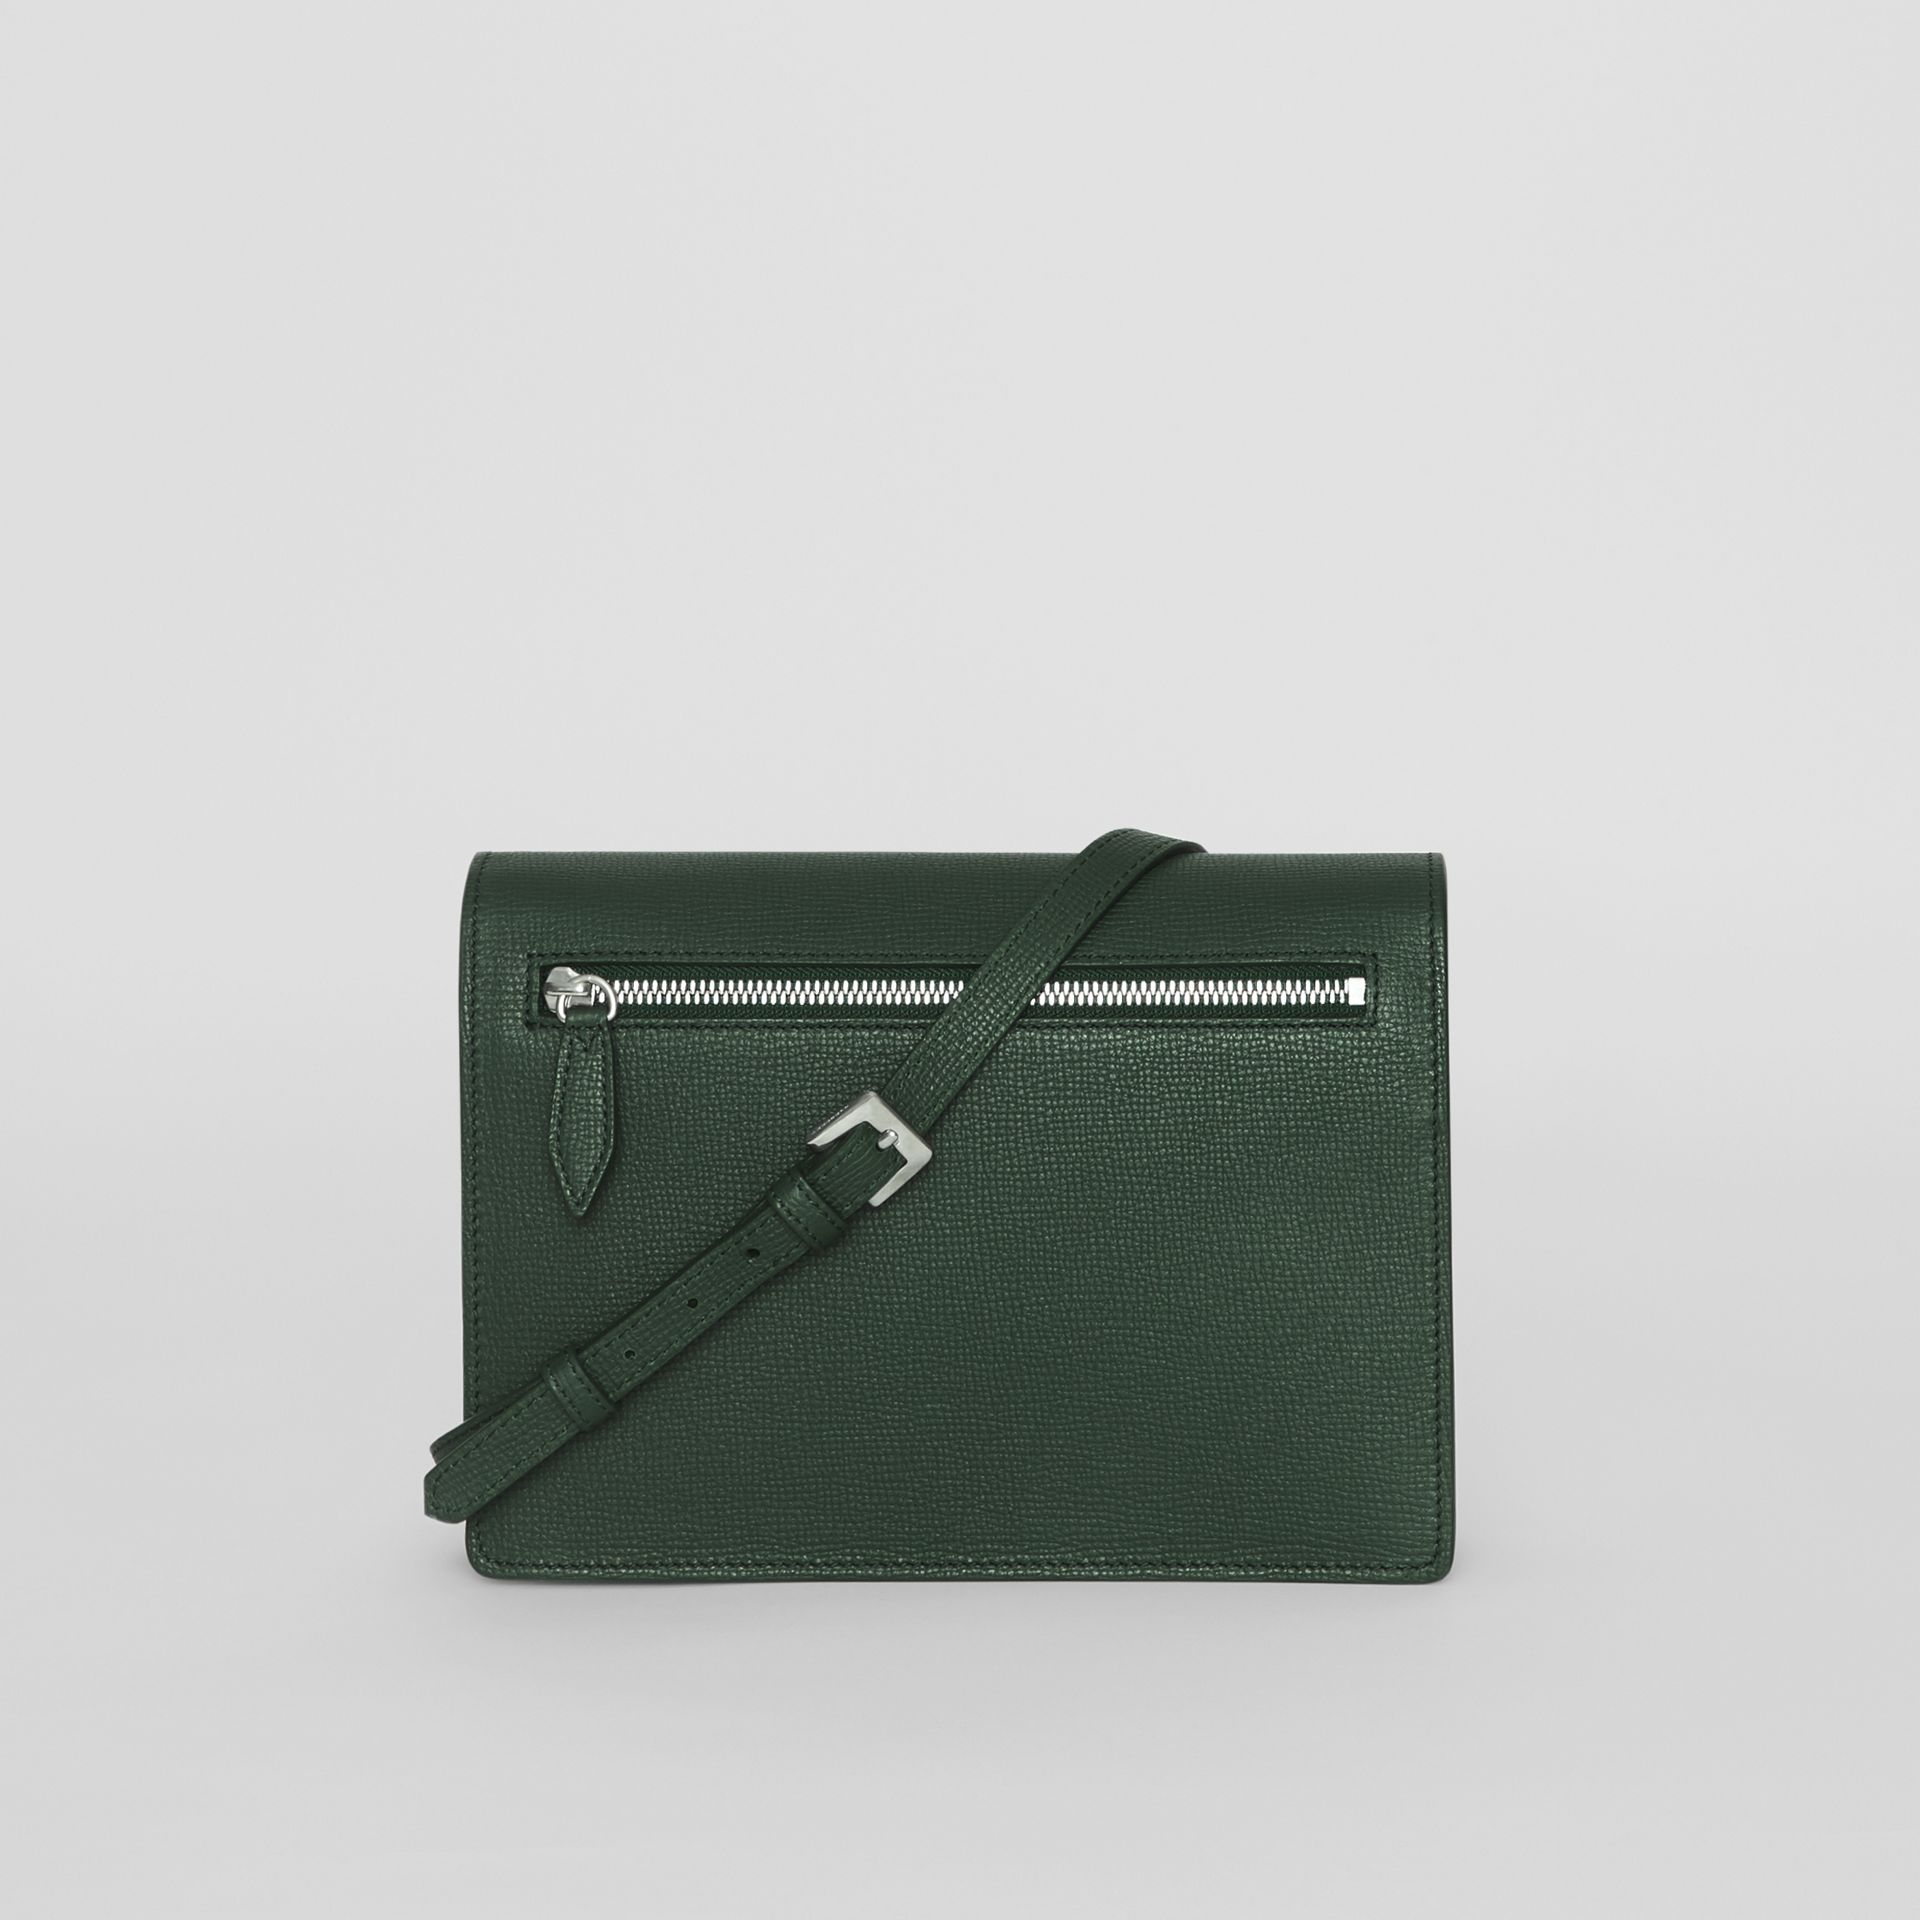 Small Vintage Check and Leather Crossbody Bag in Green - Women | Burberry Canada - gallery image 7